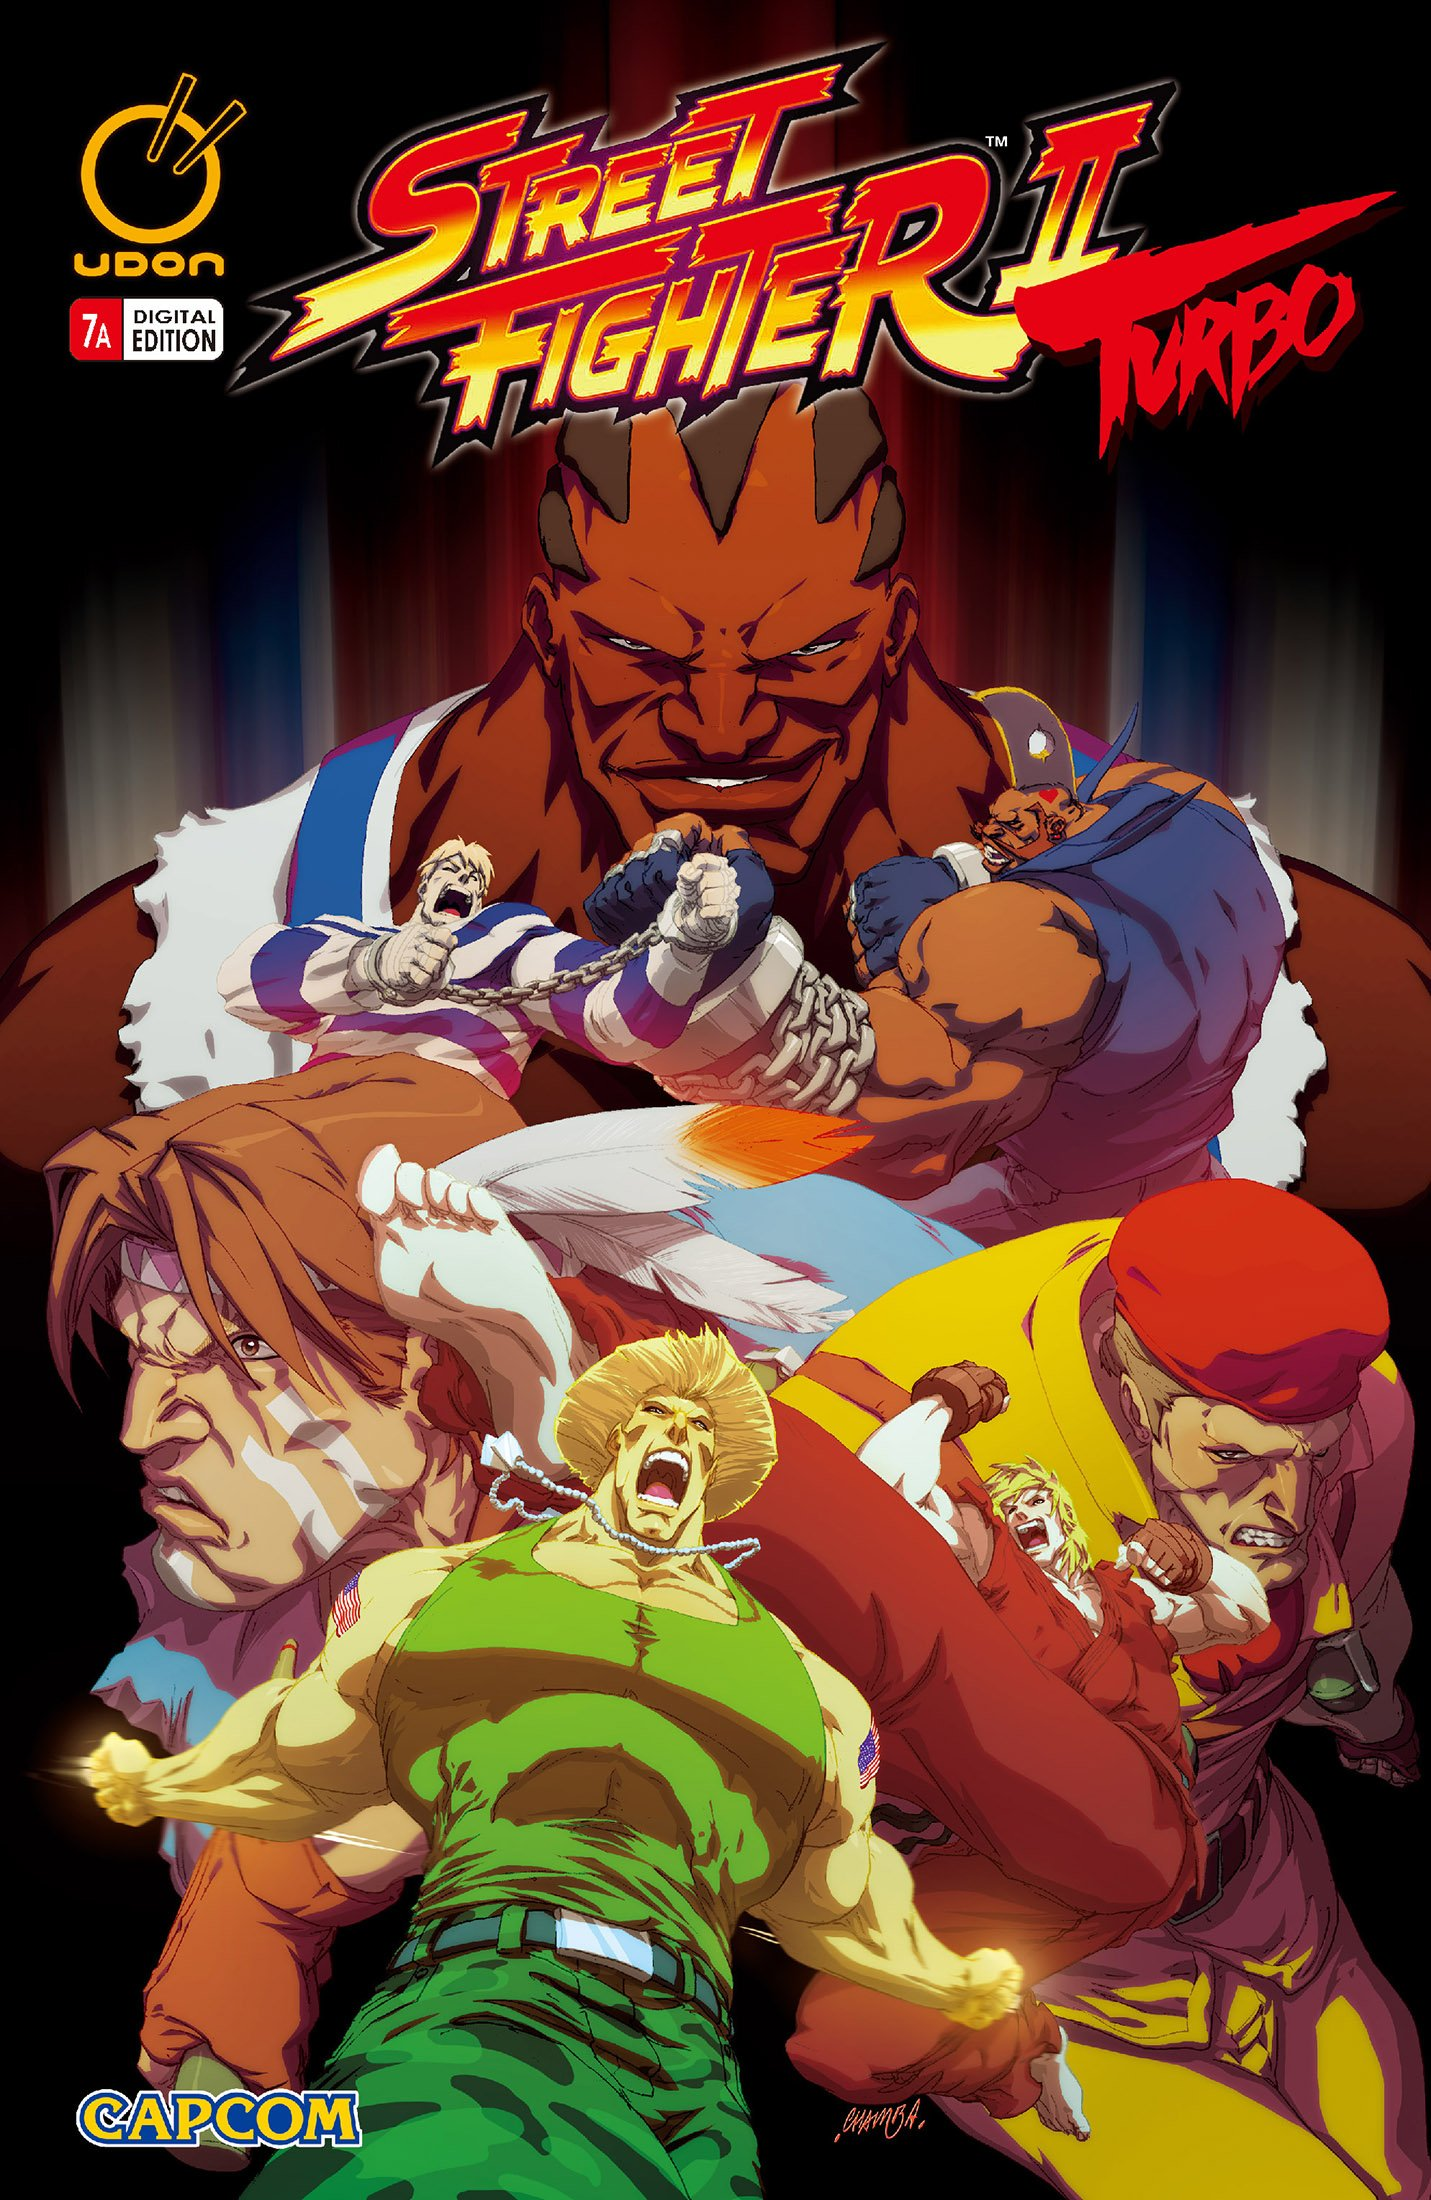 Street Fighter II Turbo 007 (July 2009) (cover a)